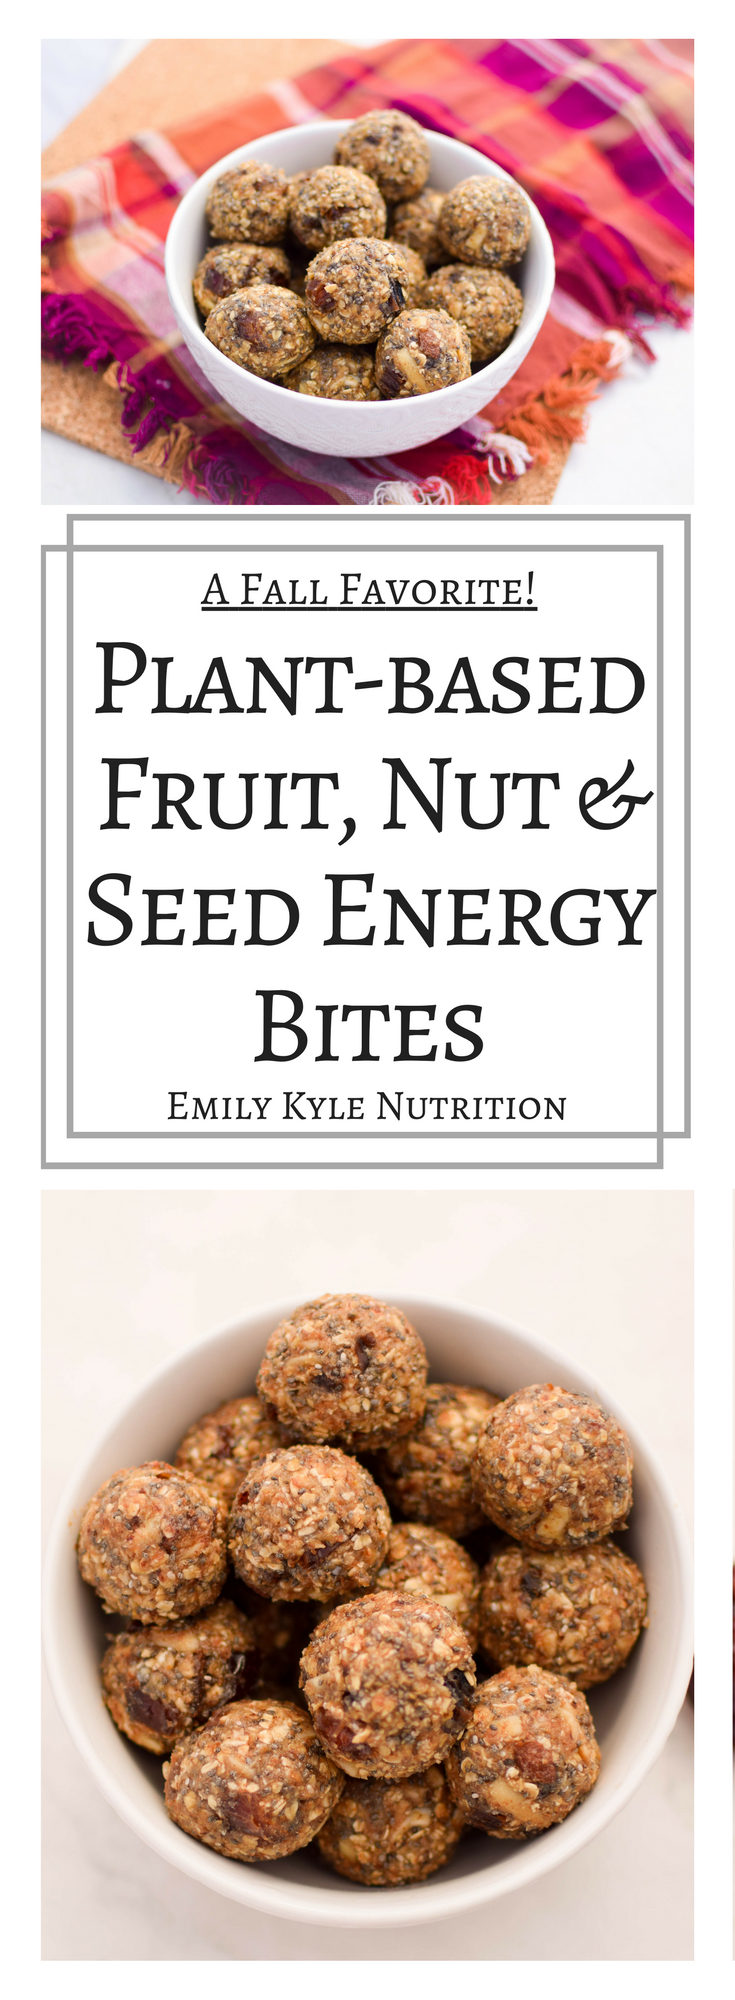 Fall is here! Fuel your body with these all natural, plant-based energy vegan fruit, nut & seed energy bites!